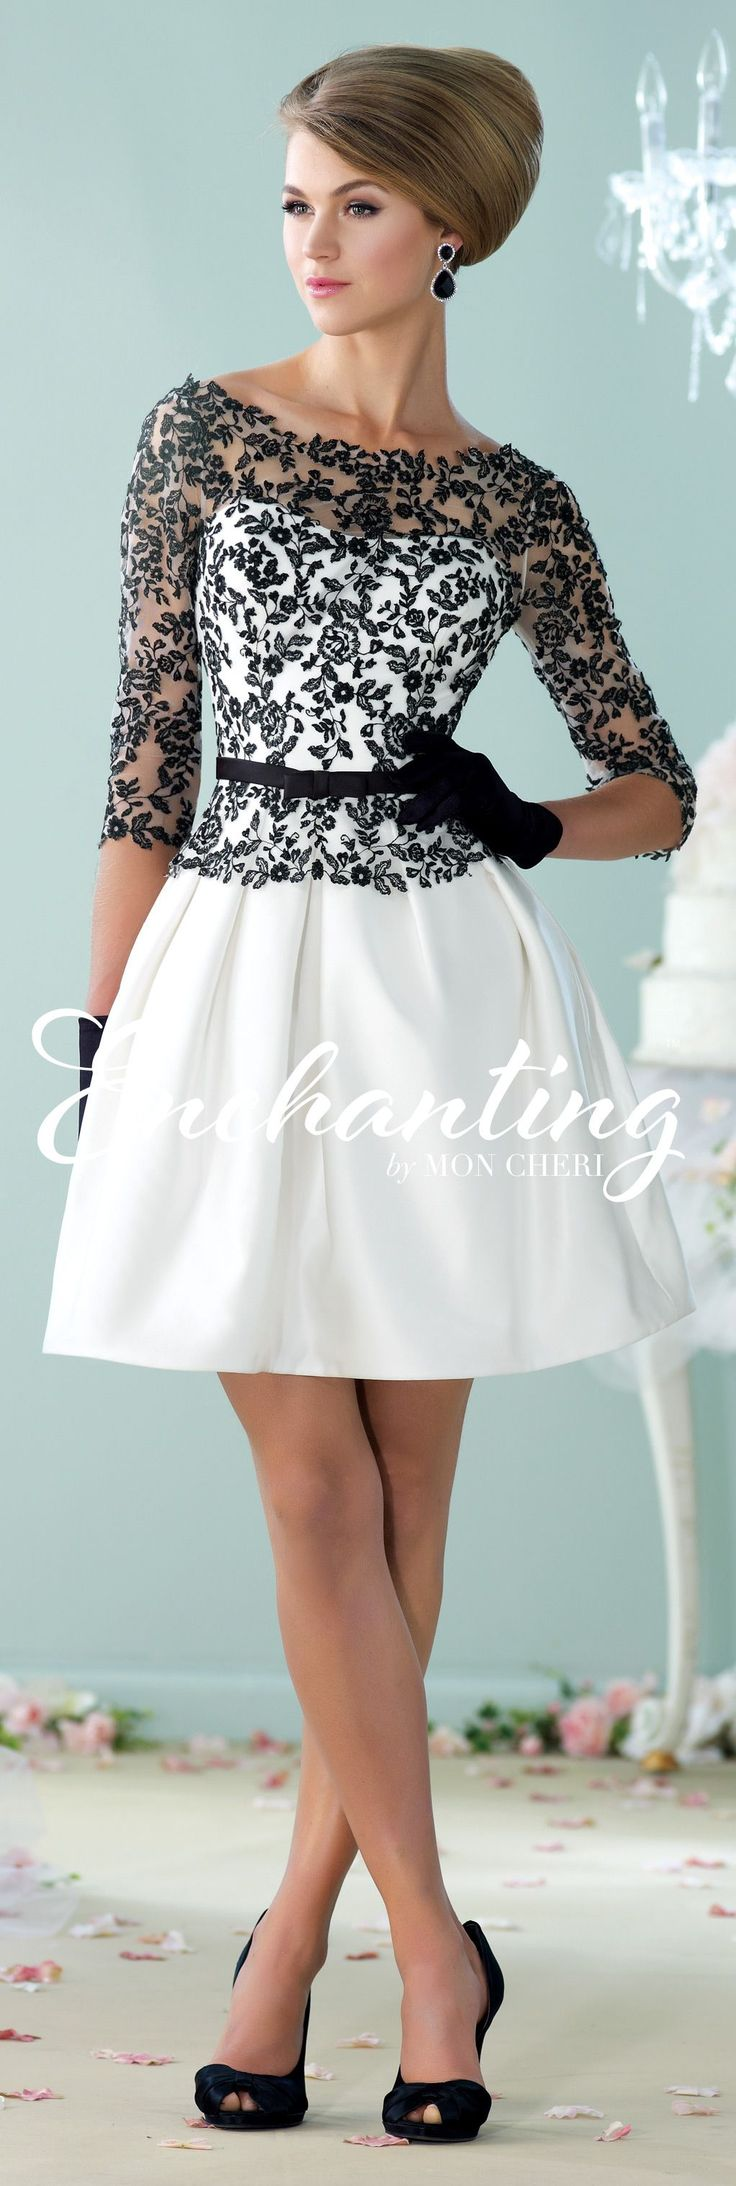 Enchanting by Mon Cheri - The Premiere Collection ~Style No. 215102 #shortweddingdress